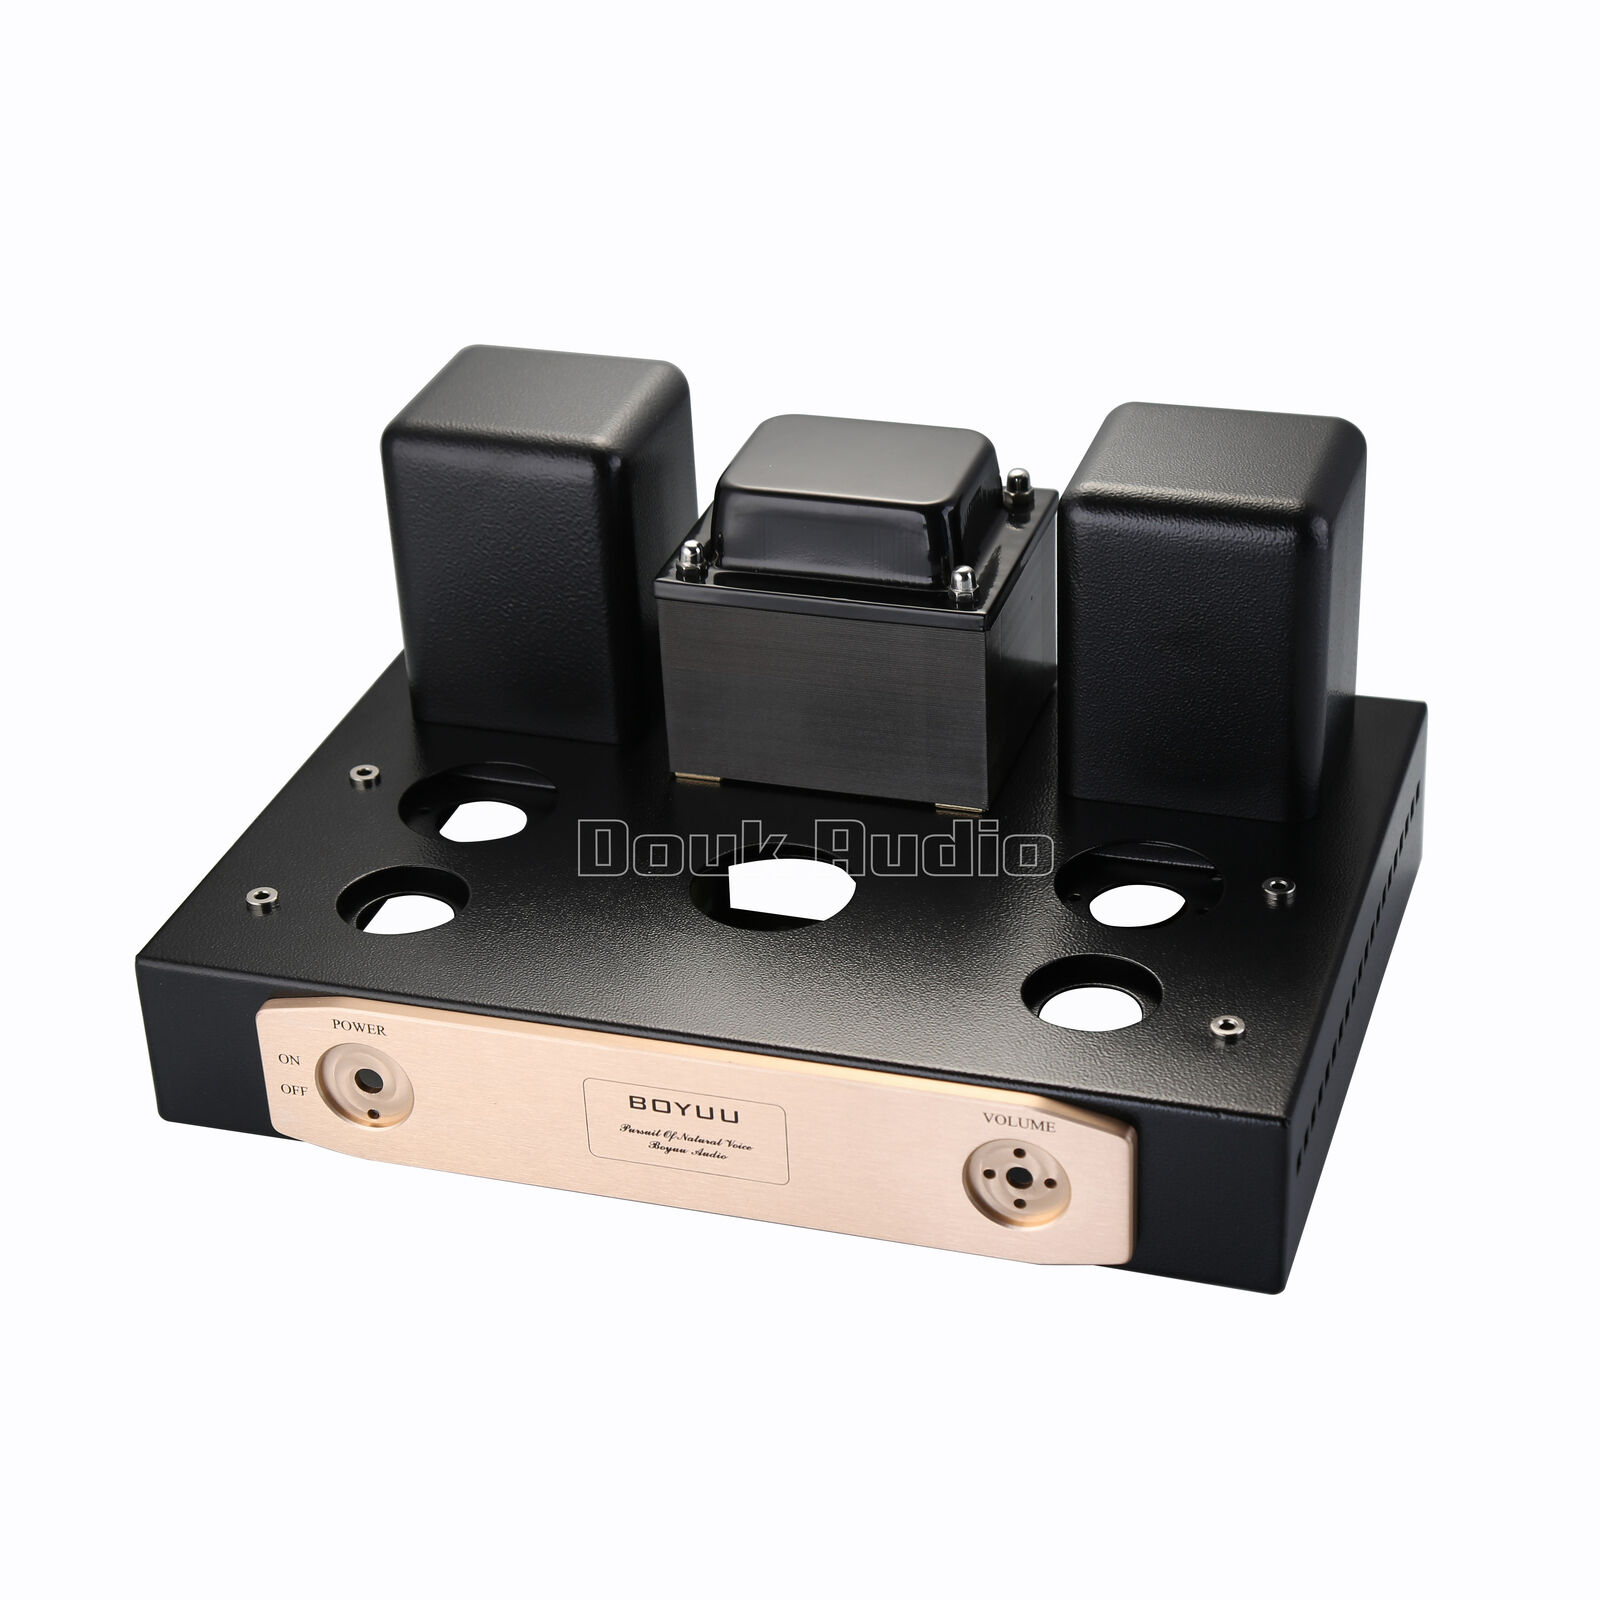 Image Result For Diy Audiophile Amplifier Kita